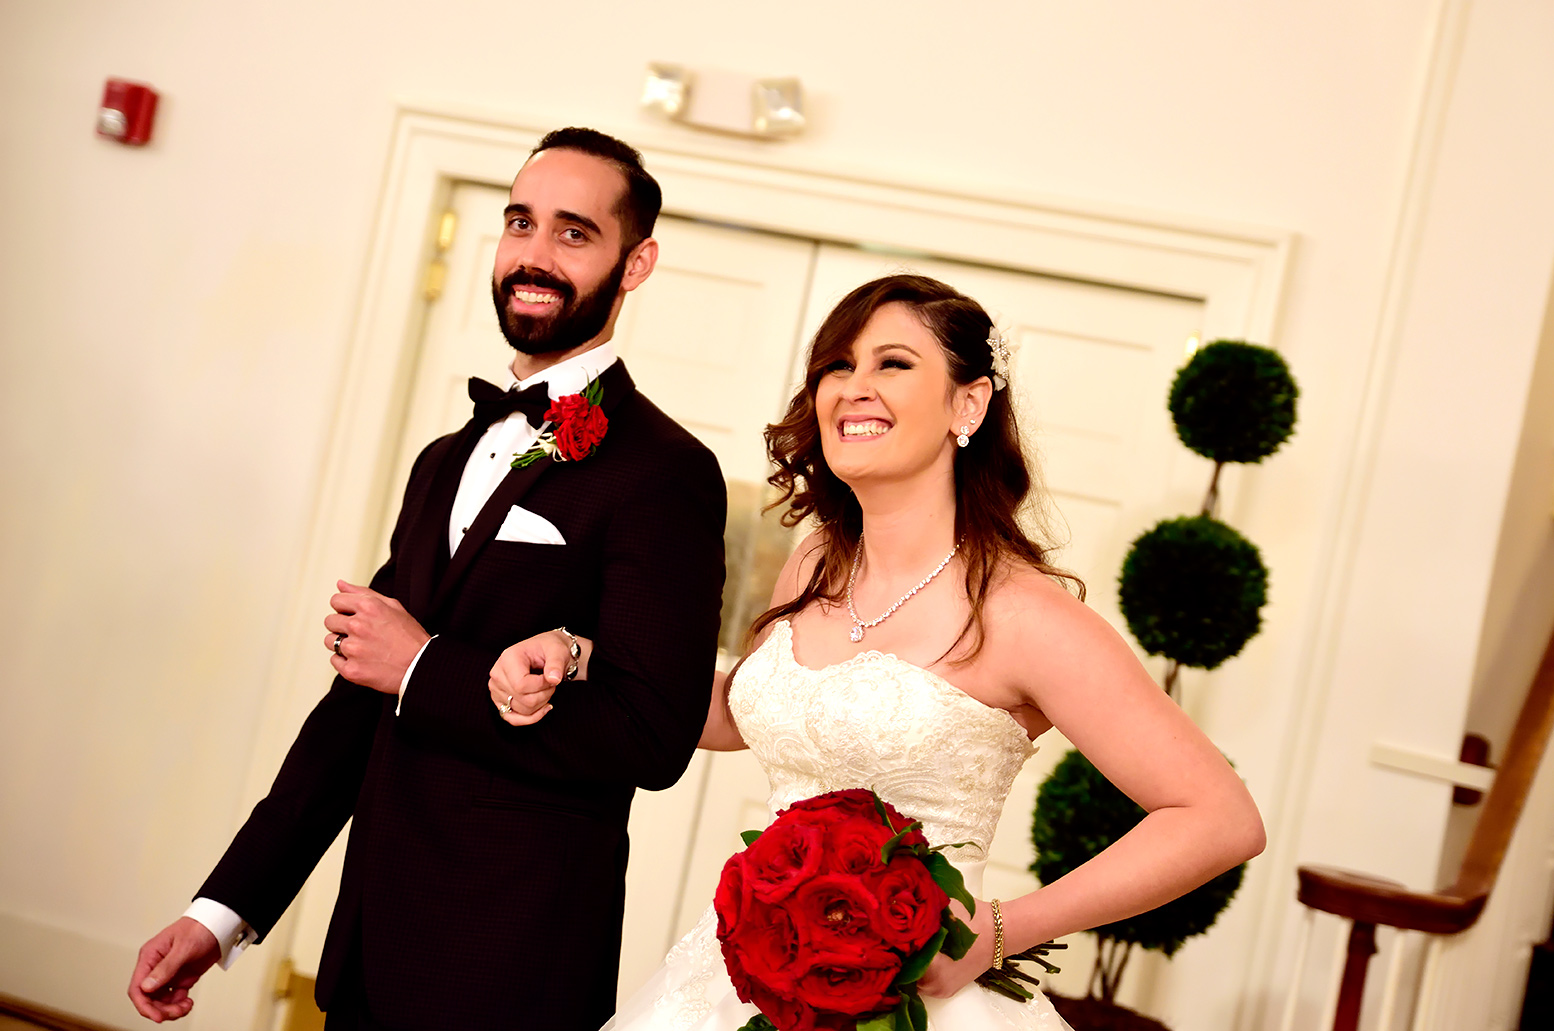 Married at First Sight's Sam Role and Neil Bowlus